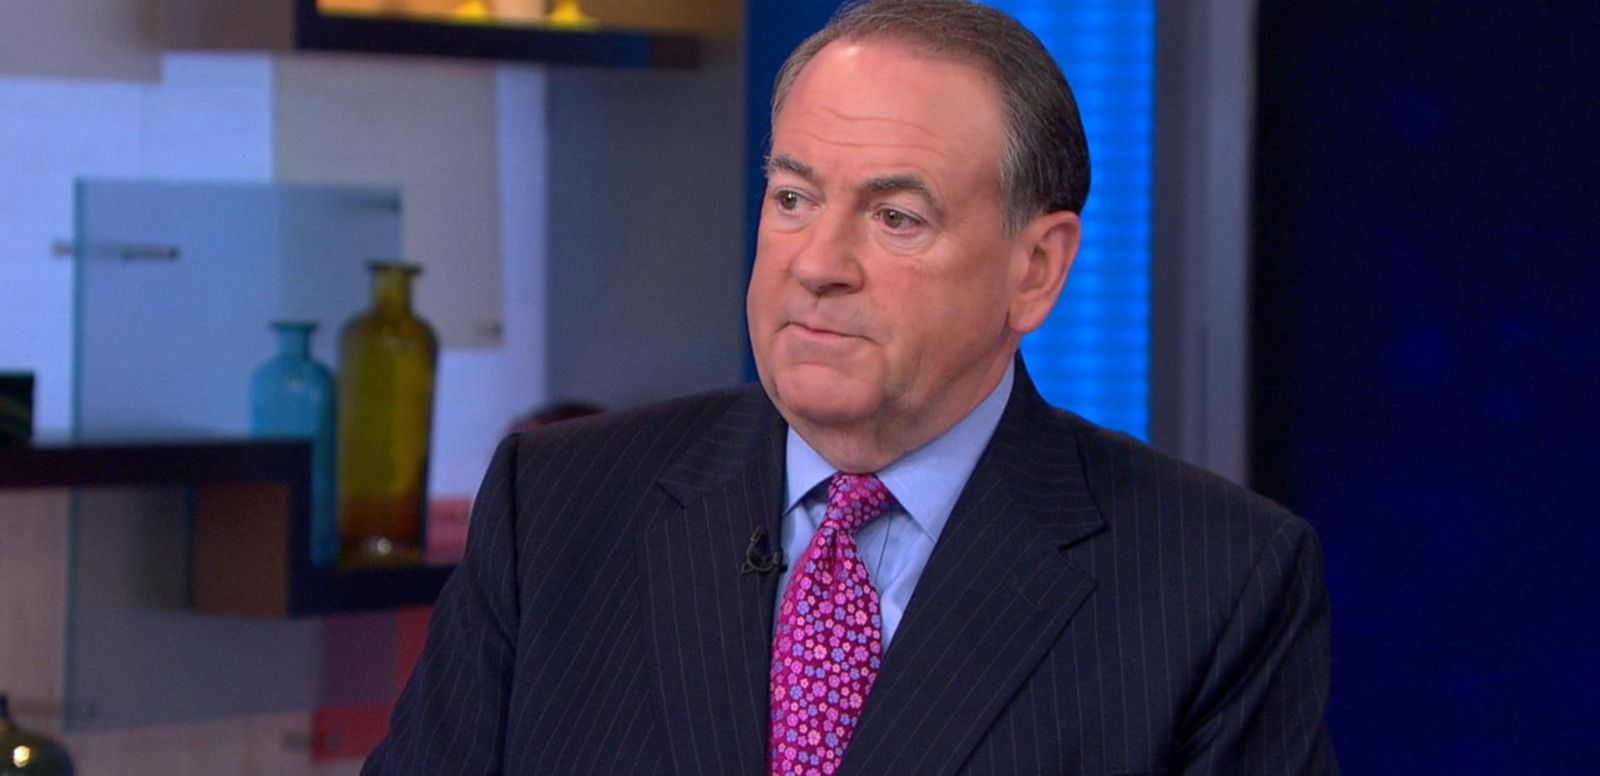 VIDEO: Mike Huckabee Describes His 2016 Presidential Campaign Live on 'GMA'